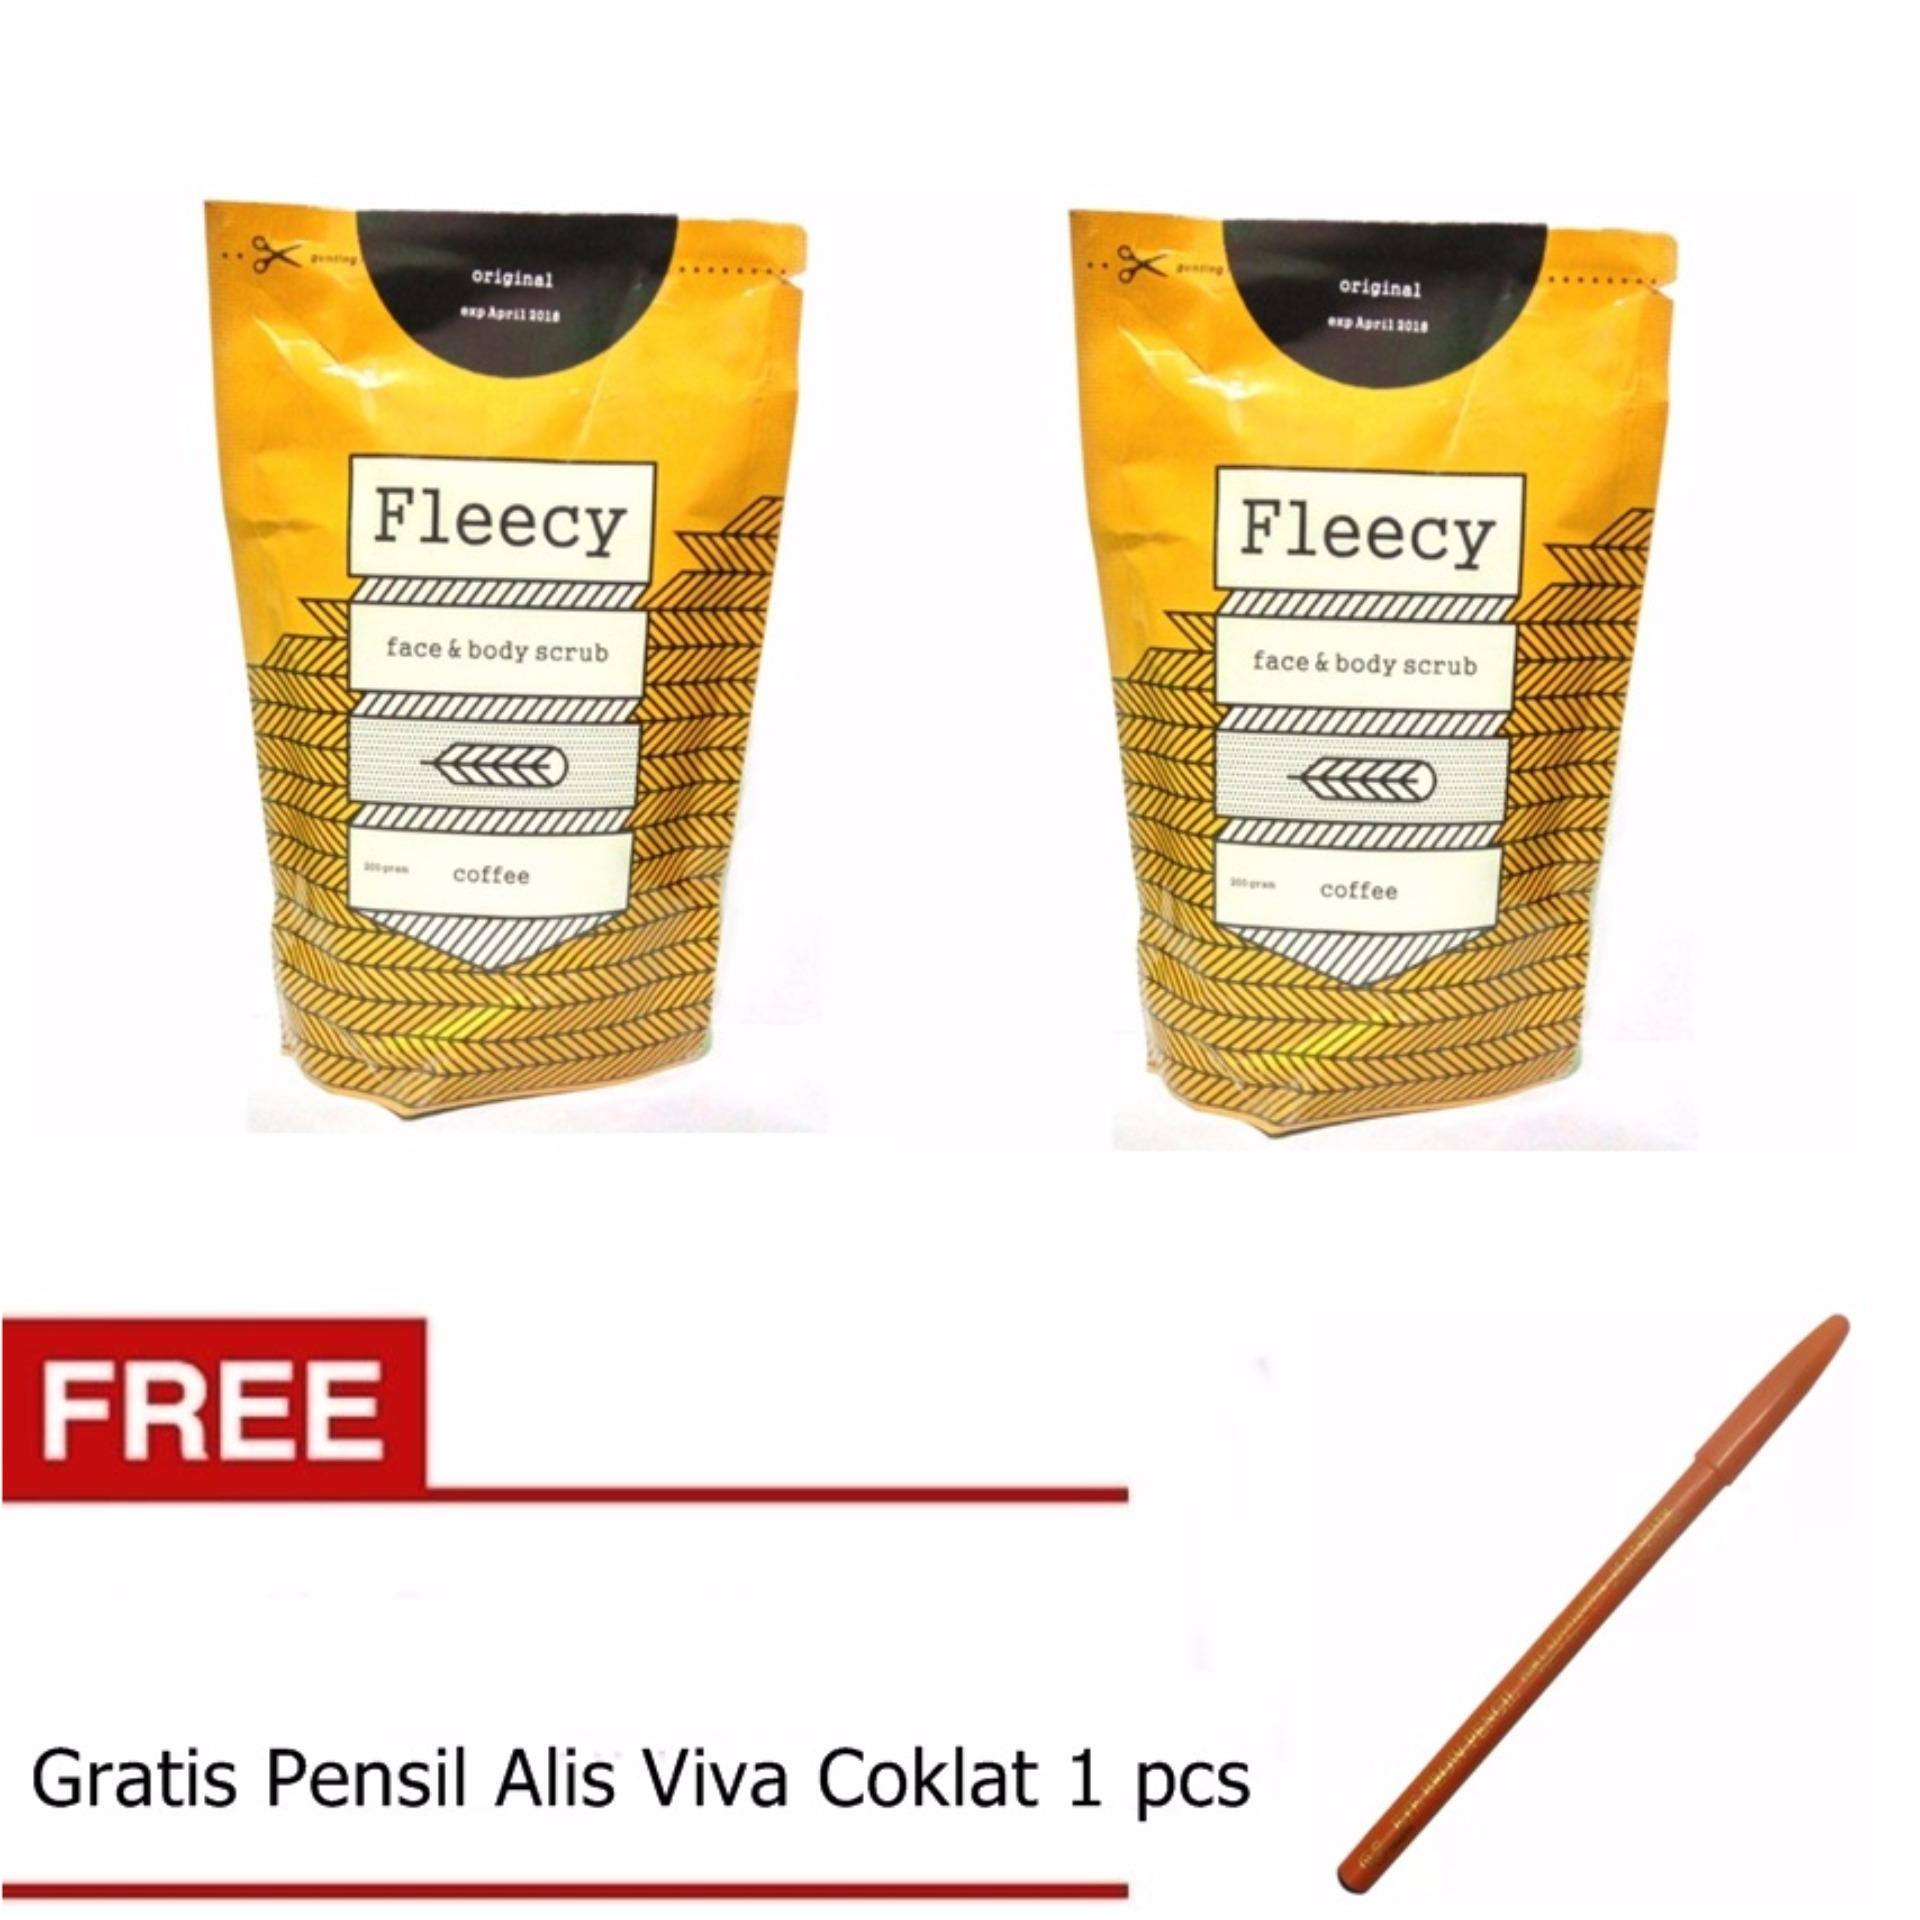 Ulasan Fleecy Face Body Scrub Original New Pack Coffee 2 Pack Gratis Pensil Alis Viva Coklat 1 Pcs